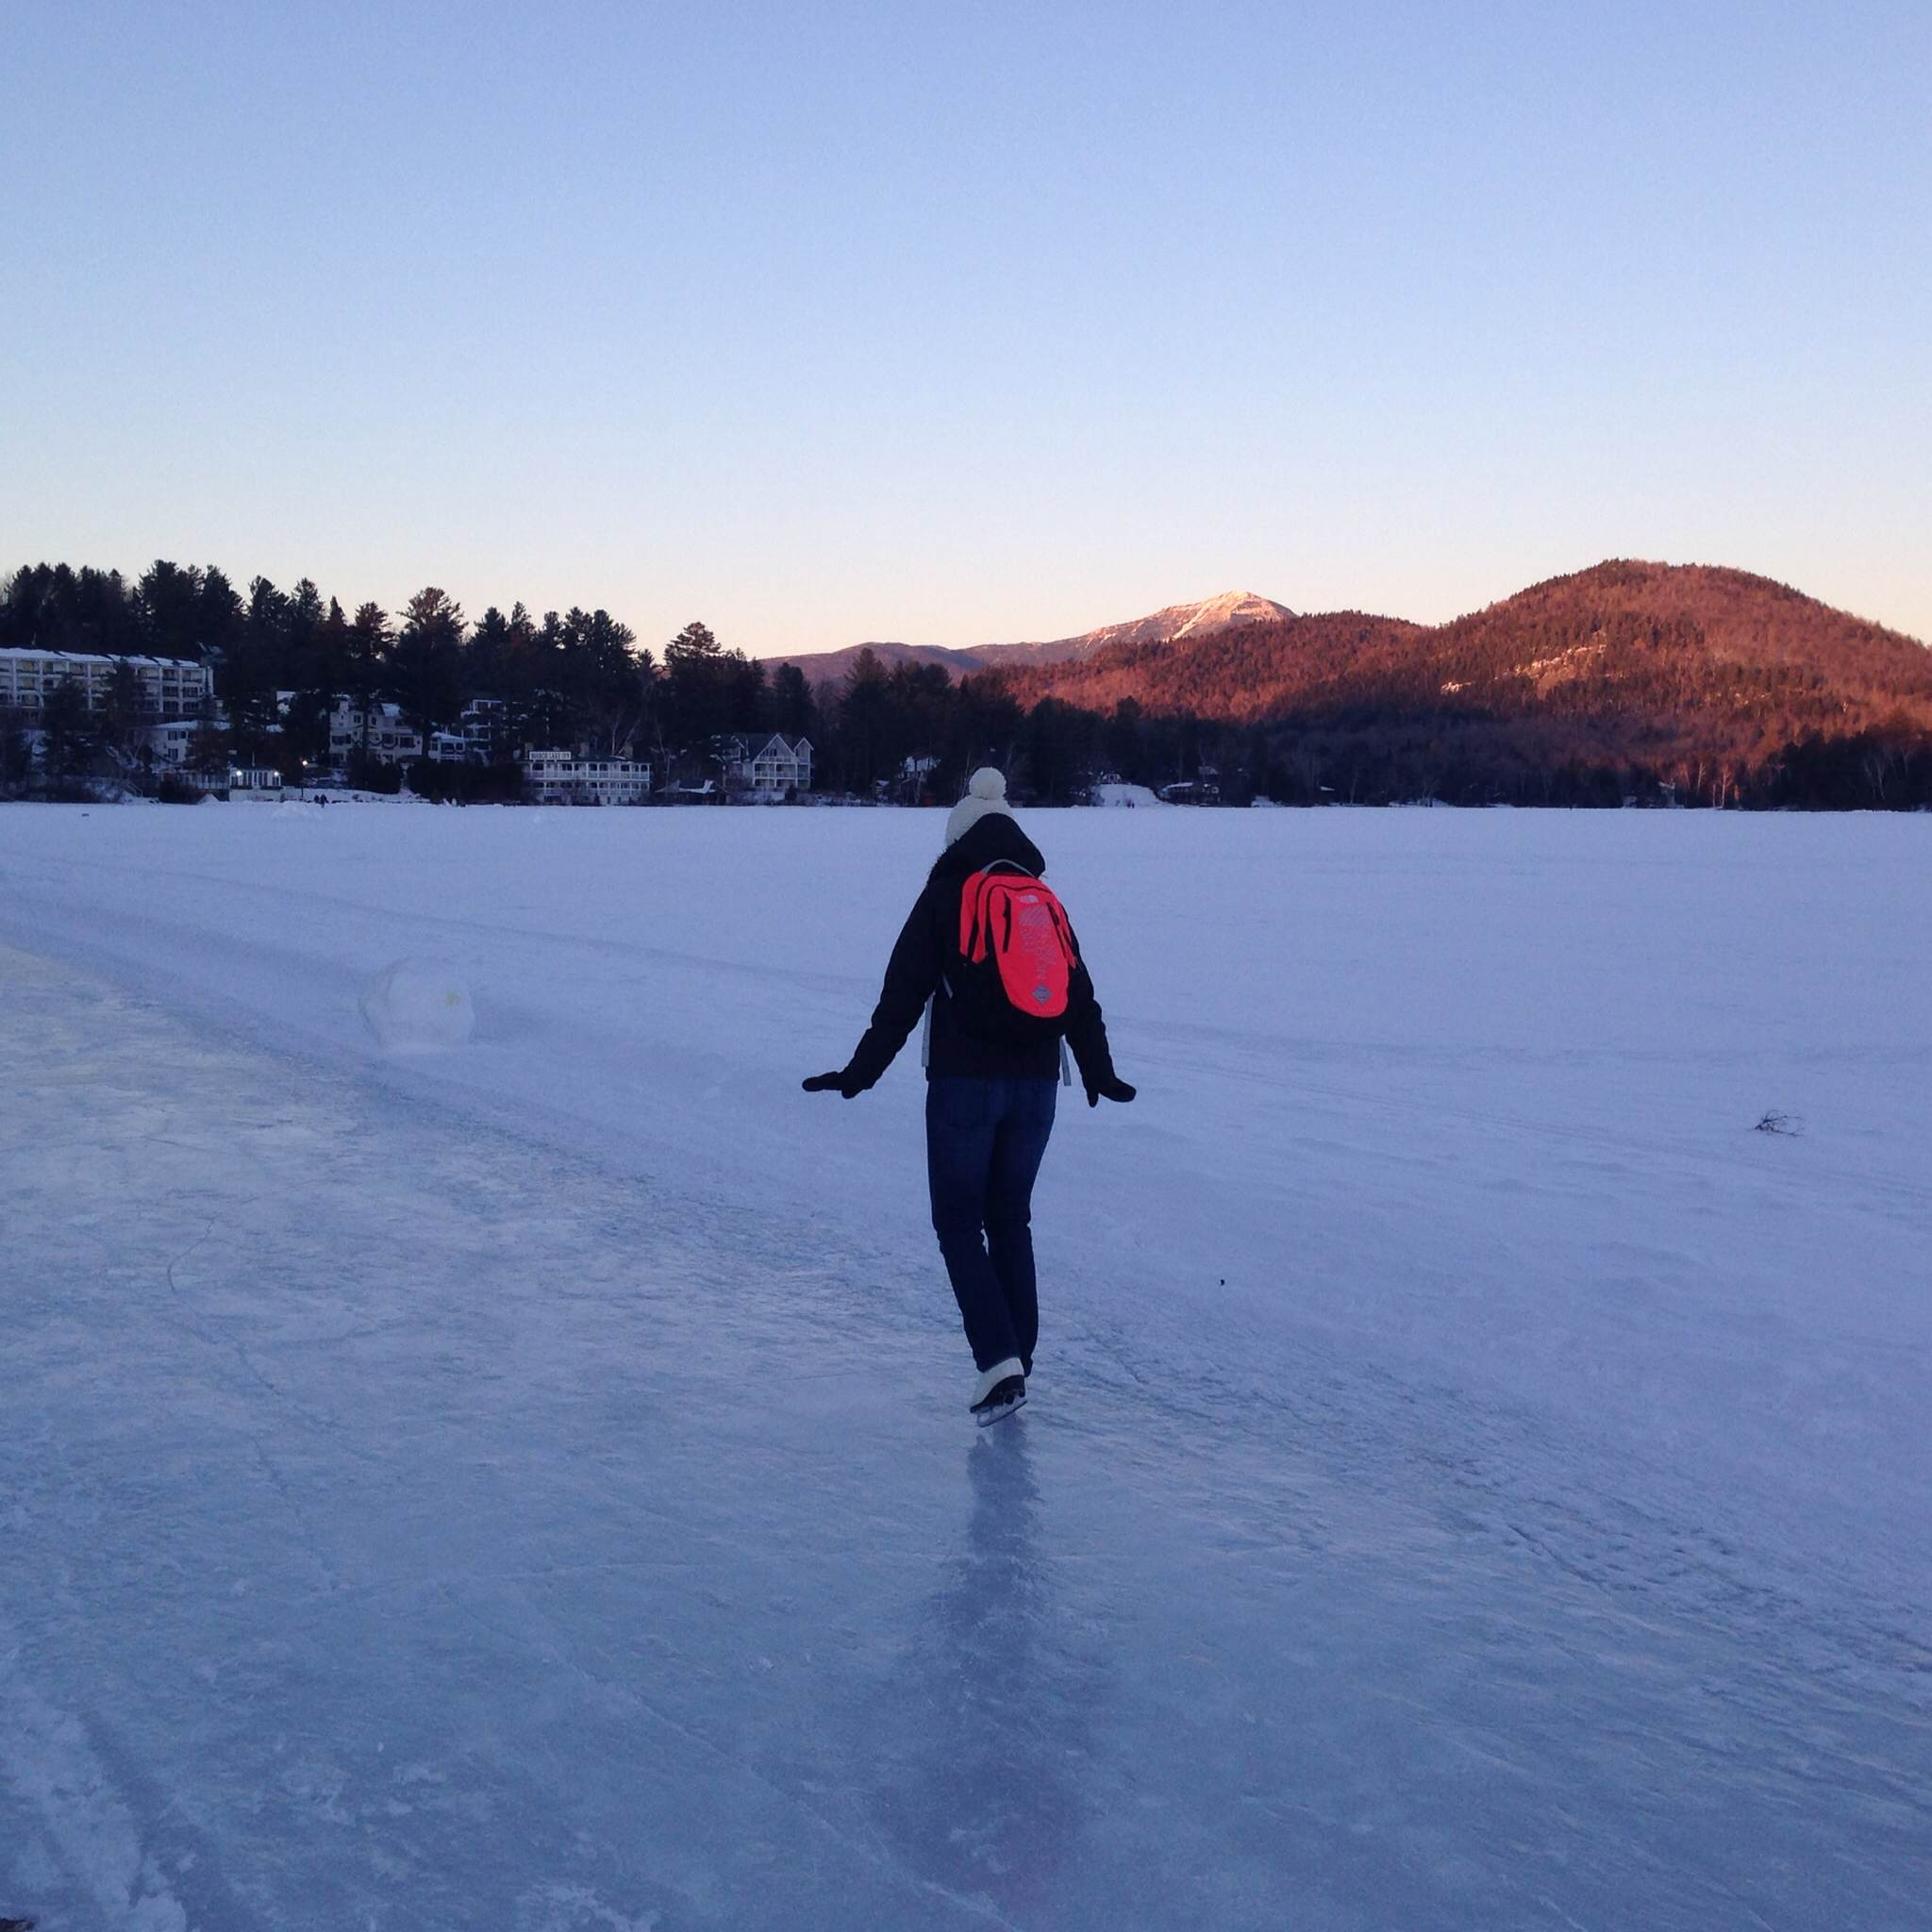 Skating on theloop that was cleared to skate on Mirror Lake. I don't believe there is anything in my backpack....I just wanted to wear it.